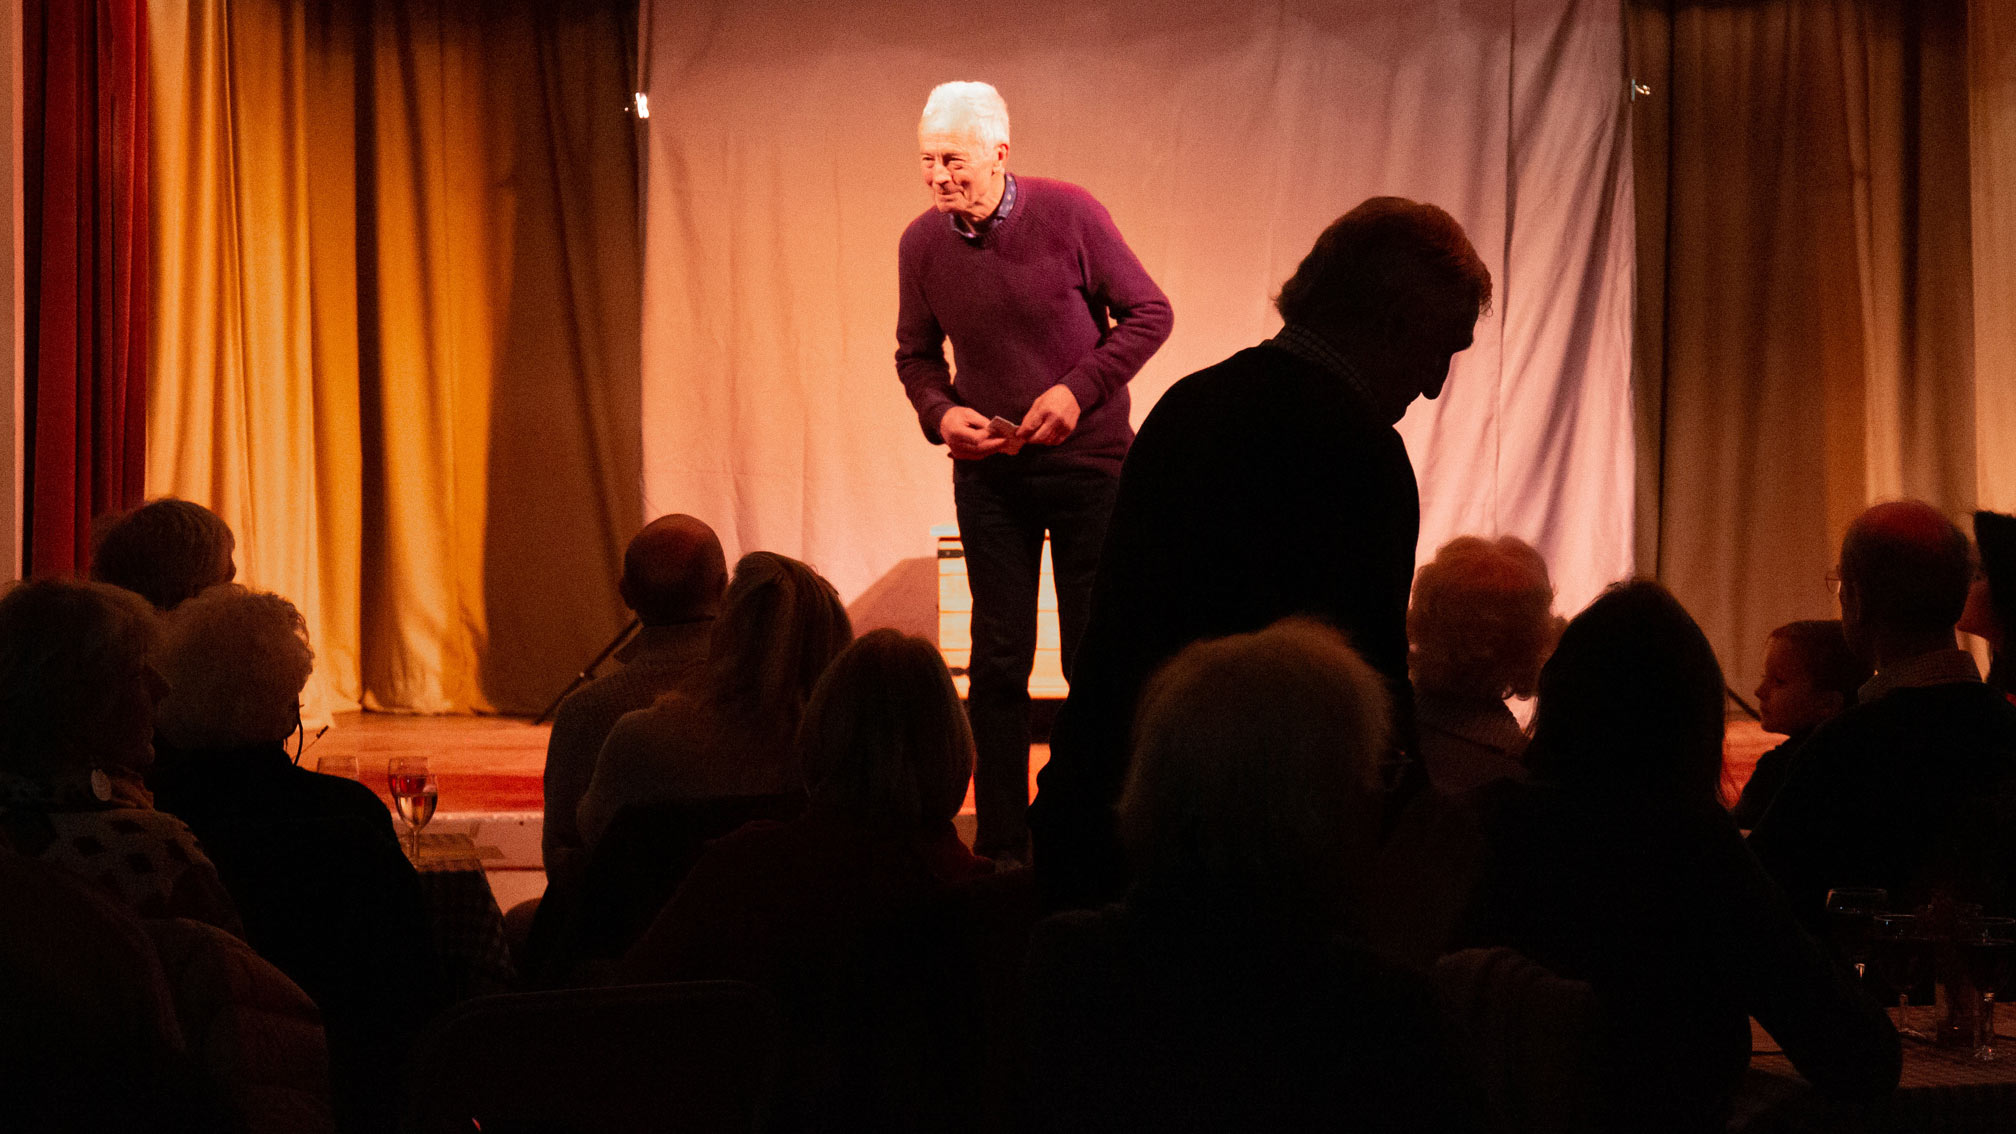 A grey haired man on stage introducing an act